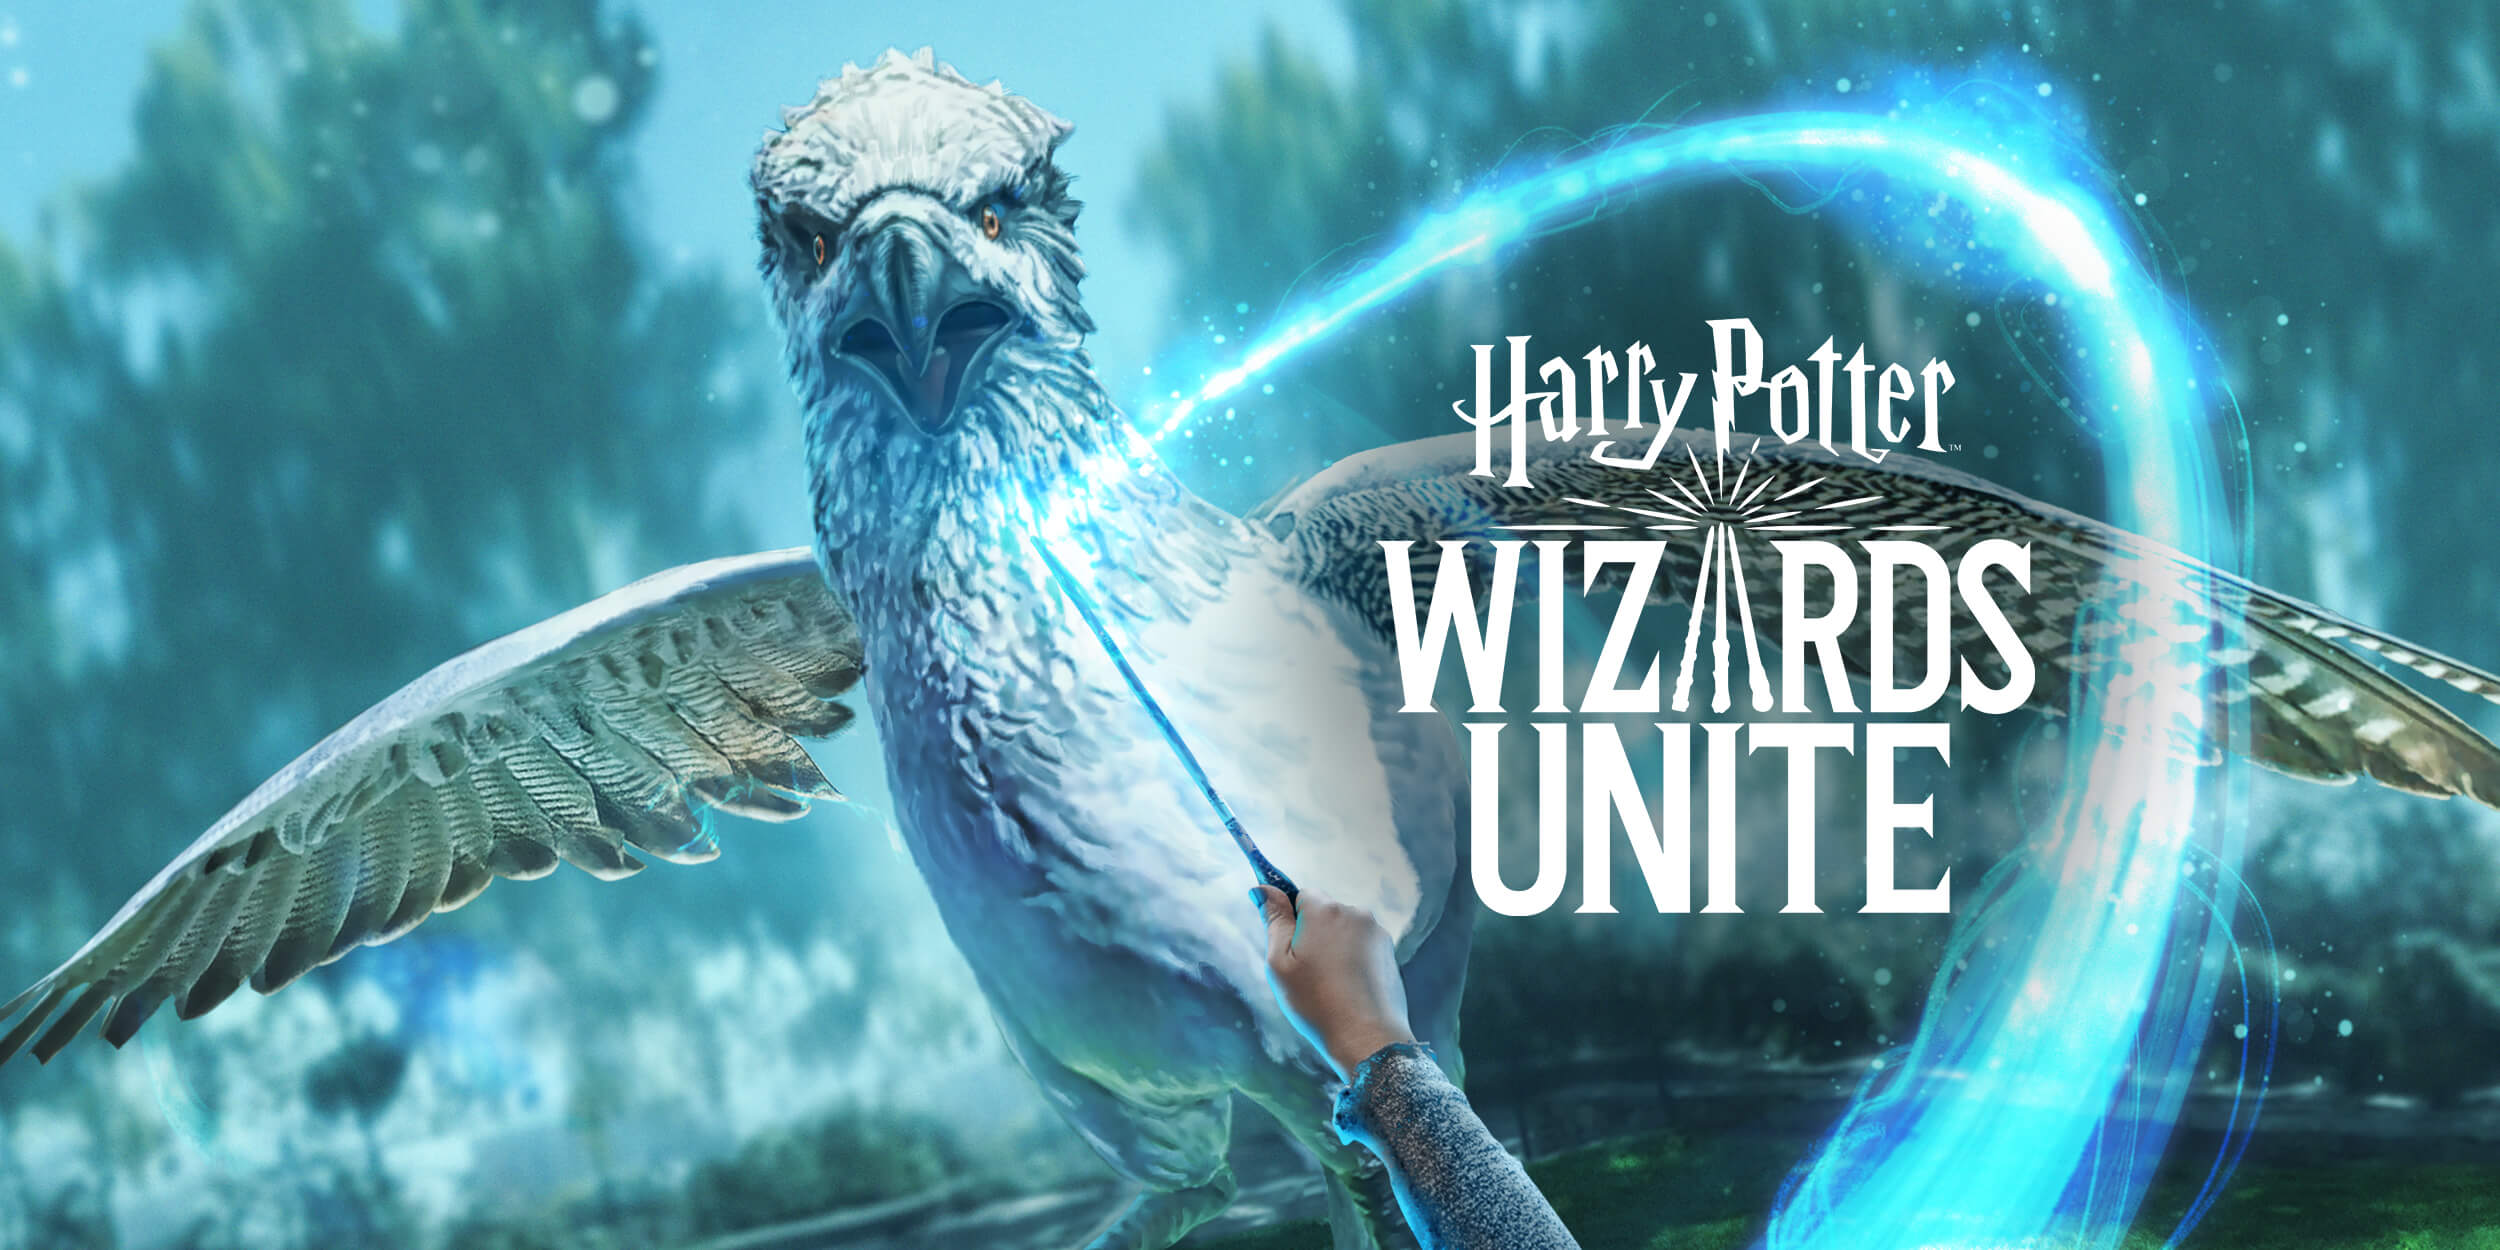 A First Look at Harry Potter: Wizards Unite